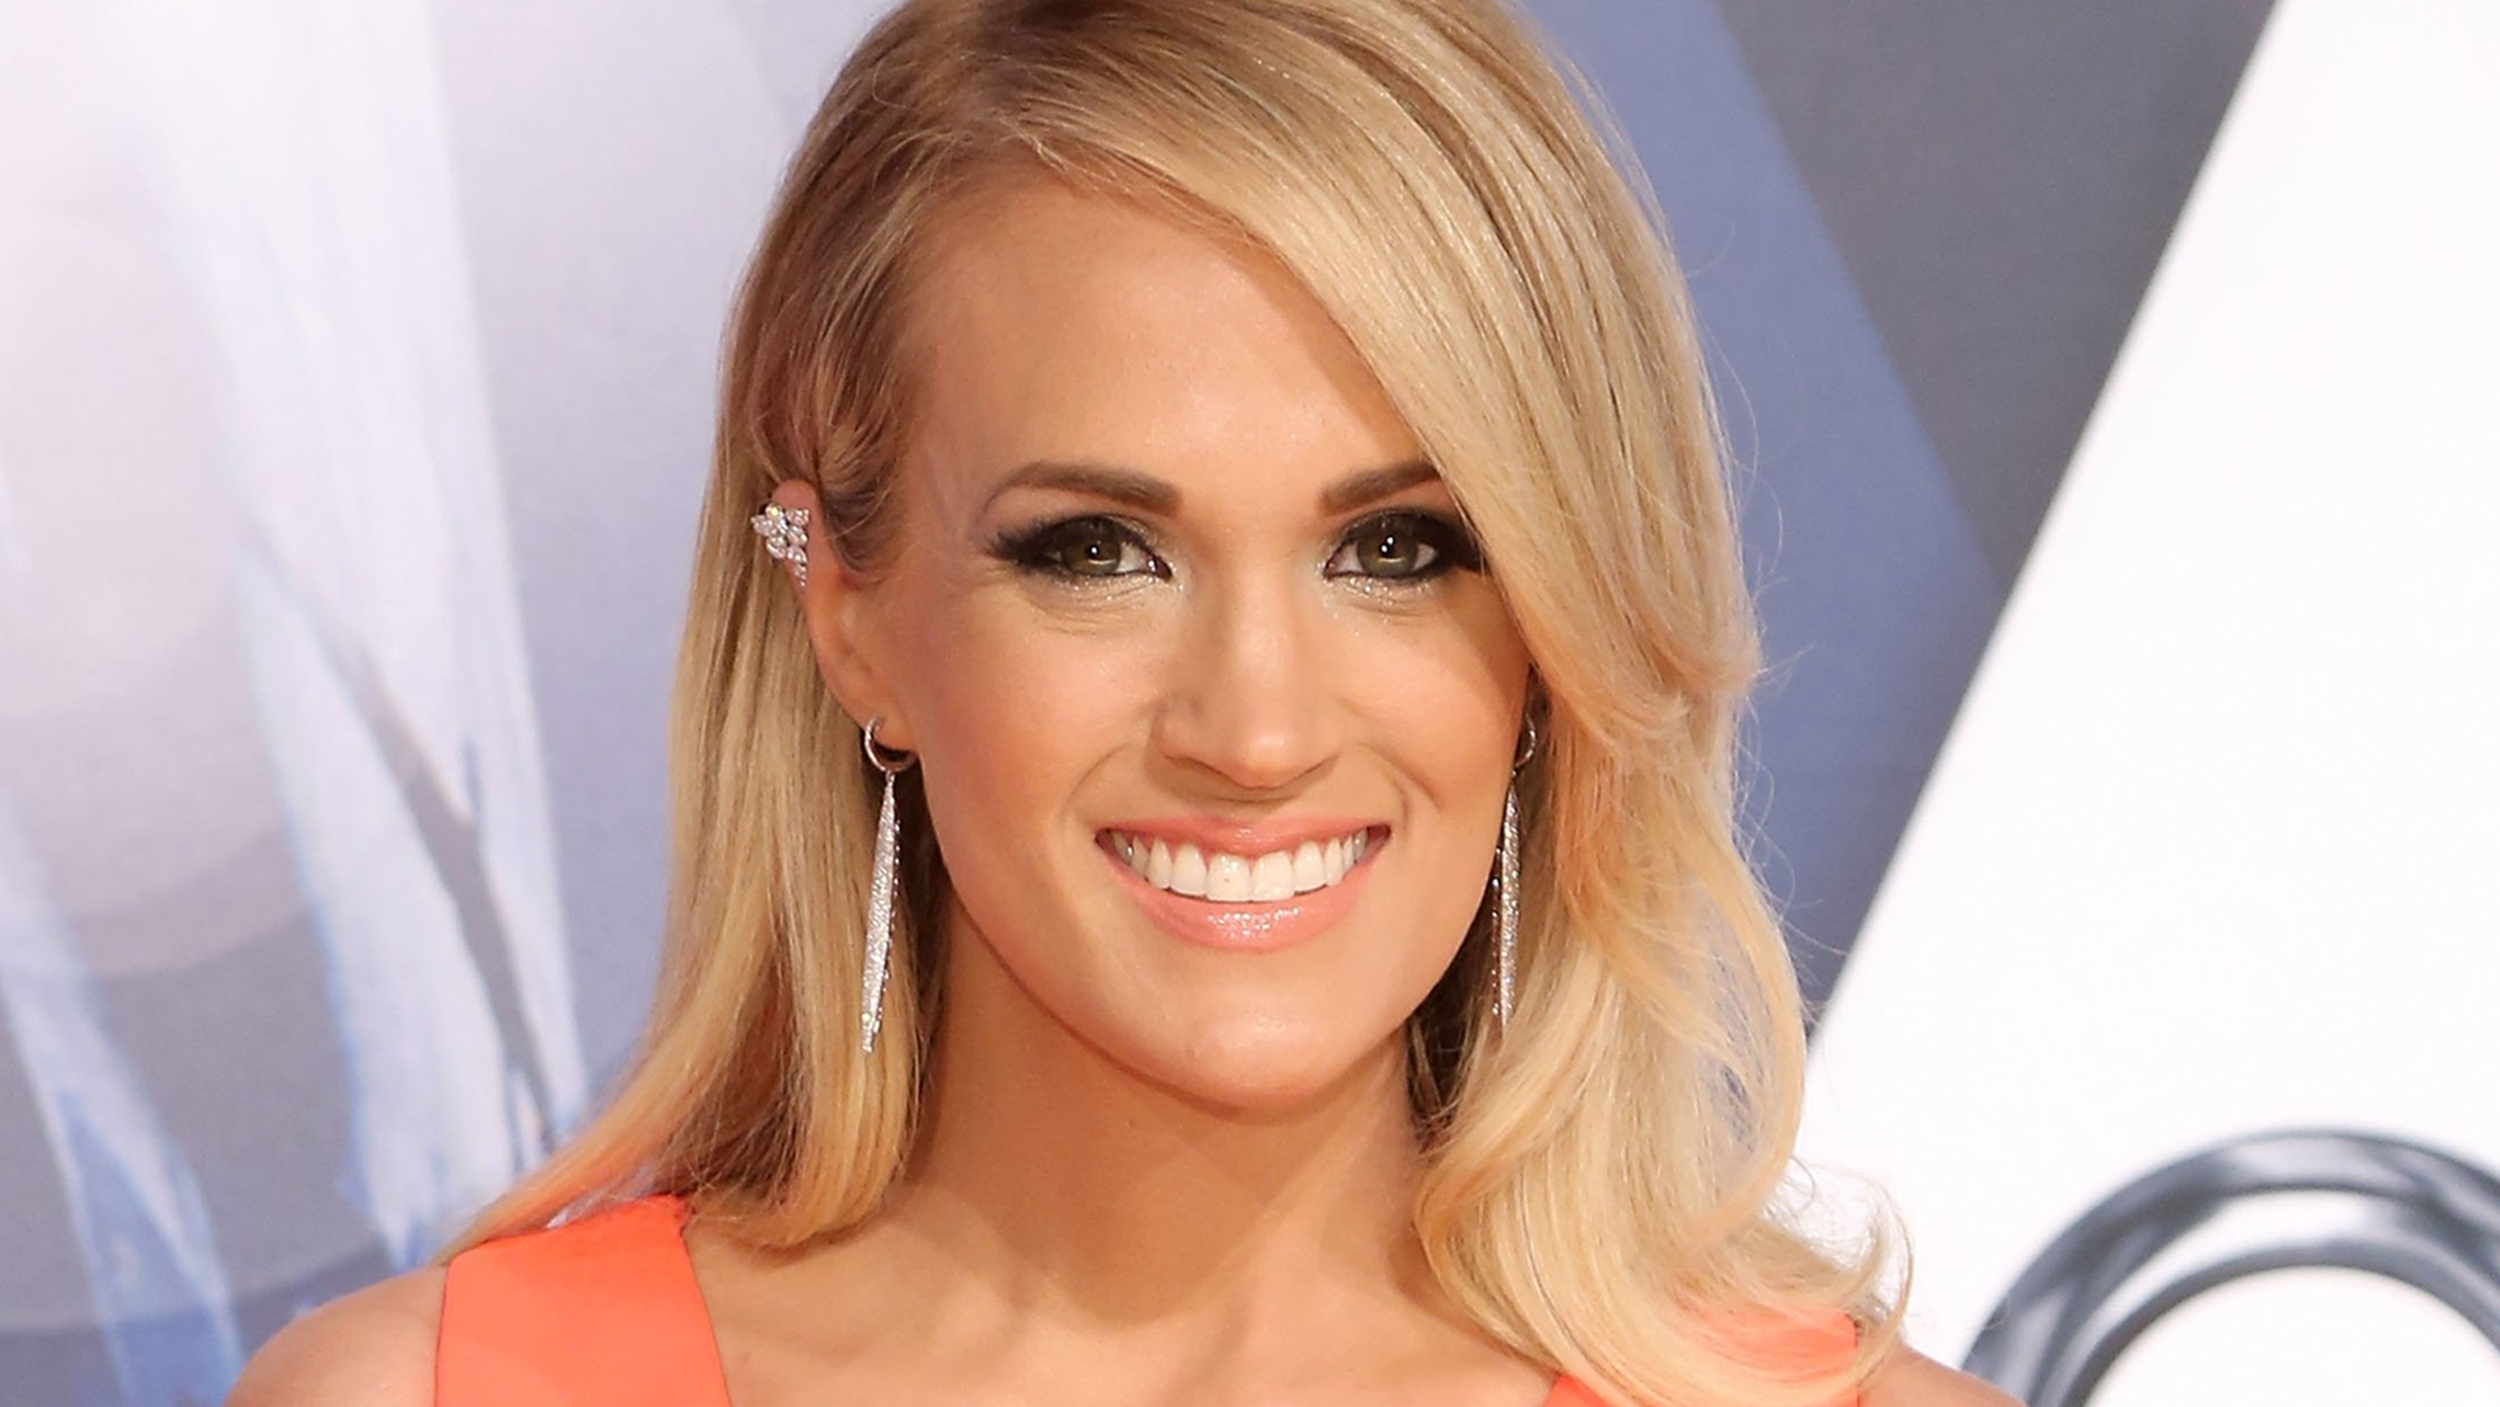 Carrie Underwood Background